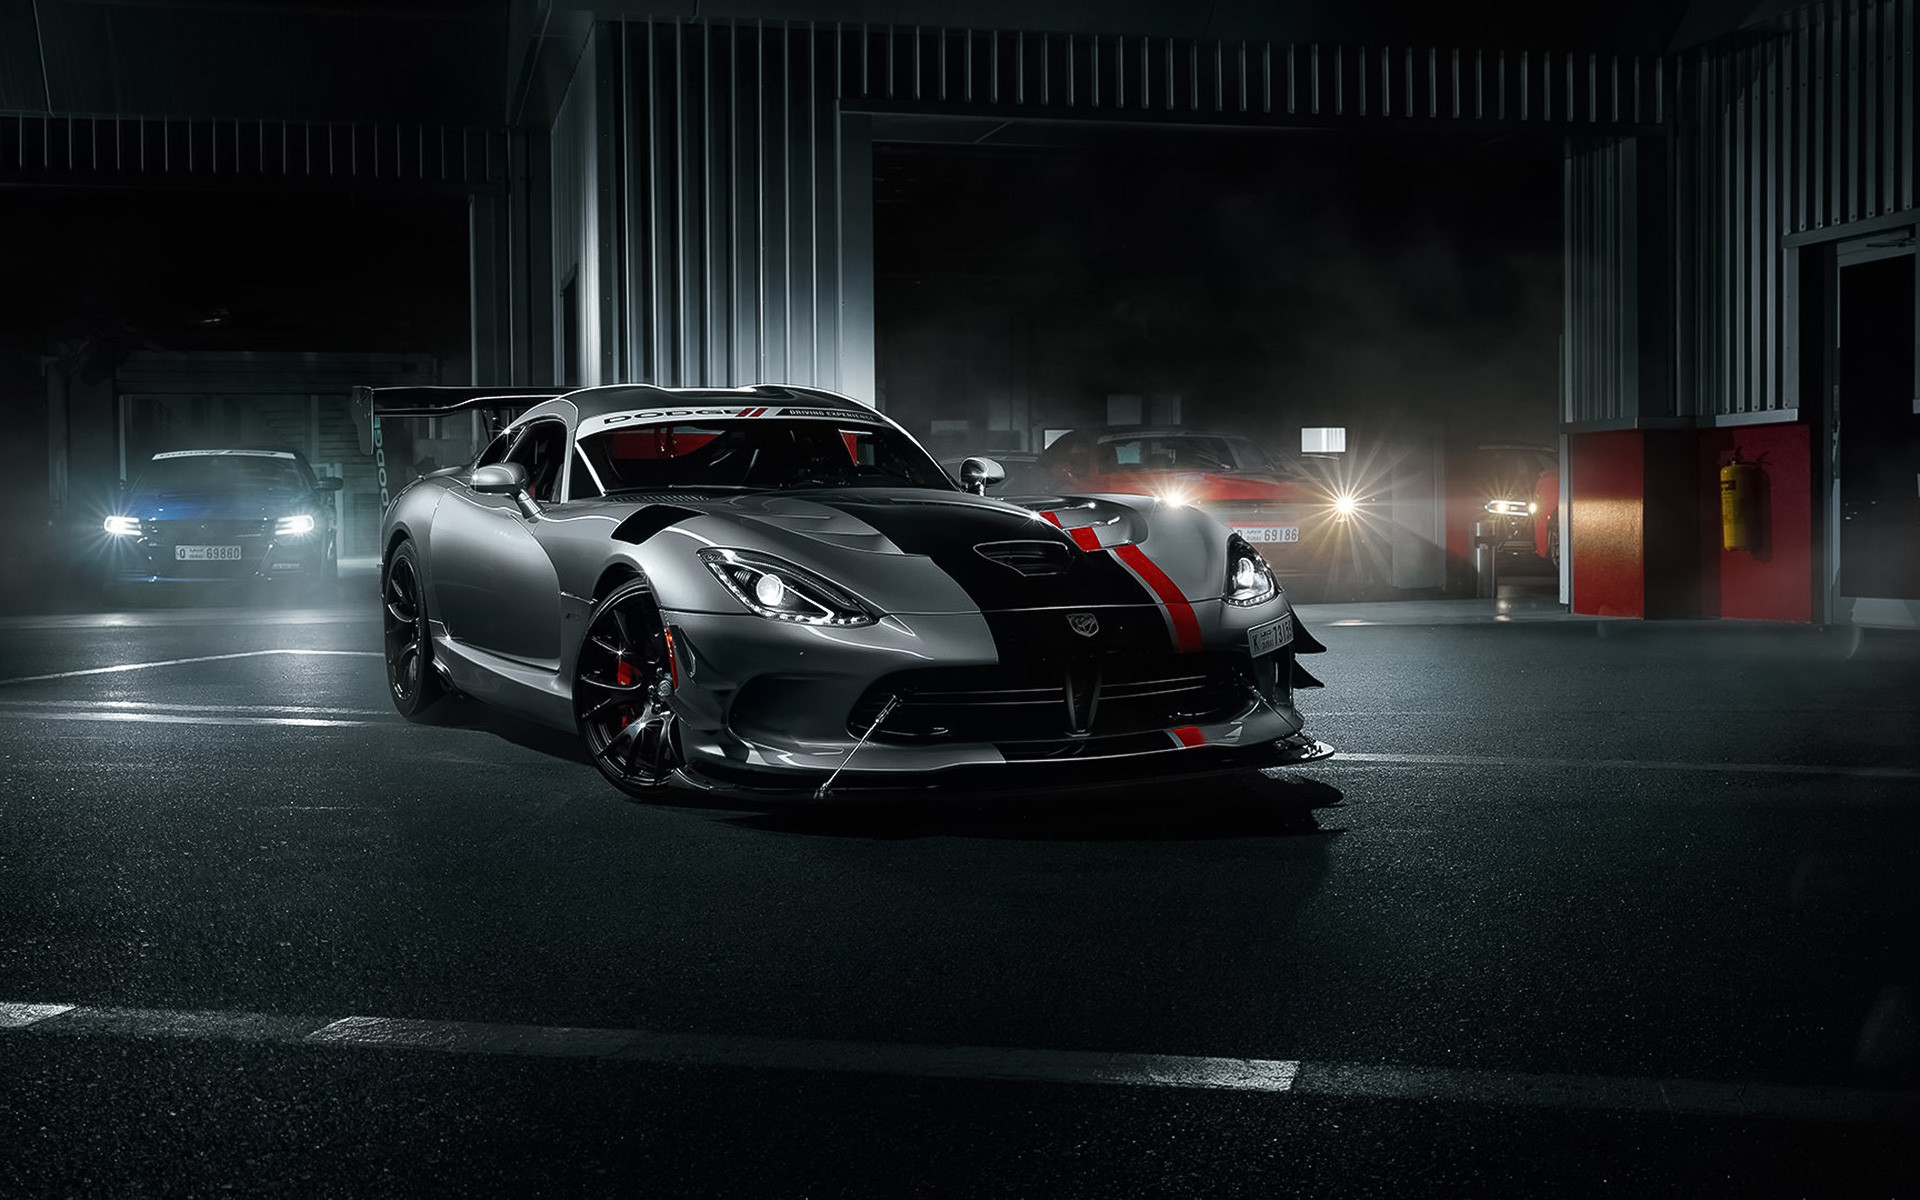 dodge viper gt 2018 wallpapers hd ·①